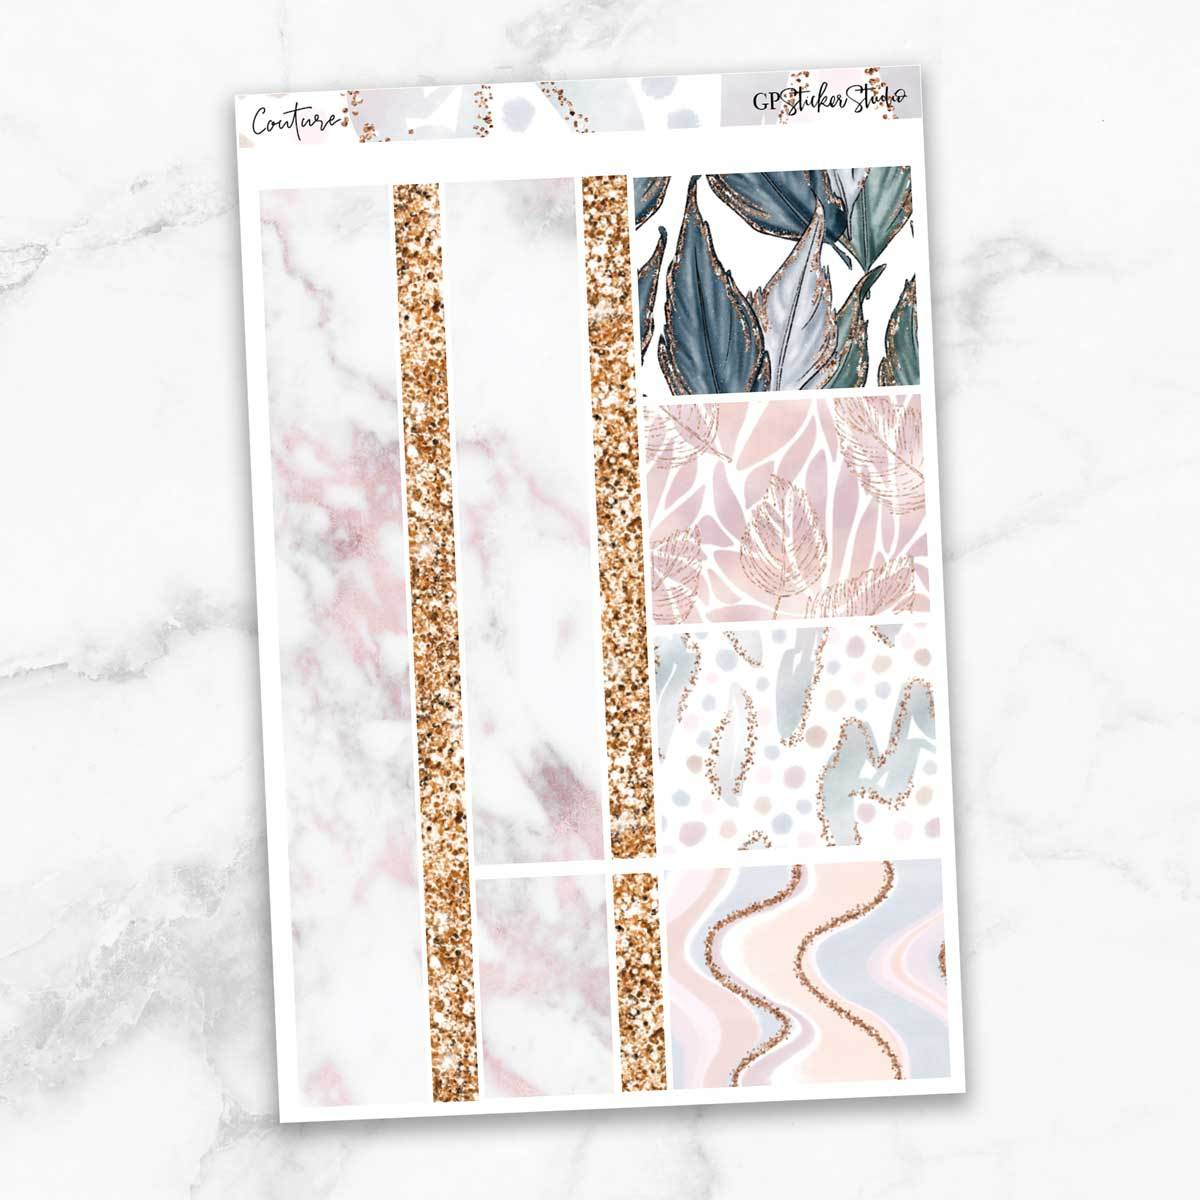 COUTURE Washi Sheet Stickers-The GP Studio